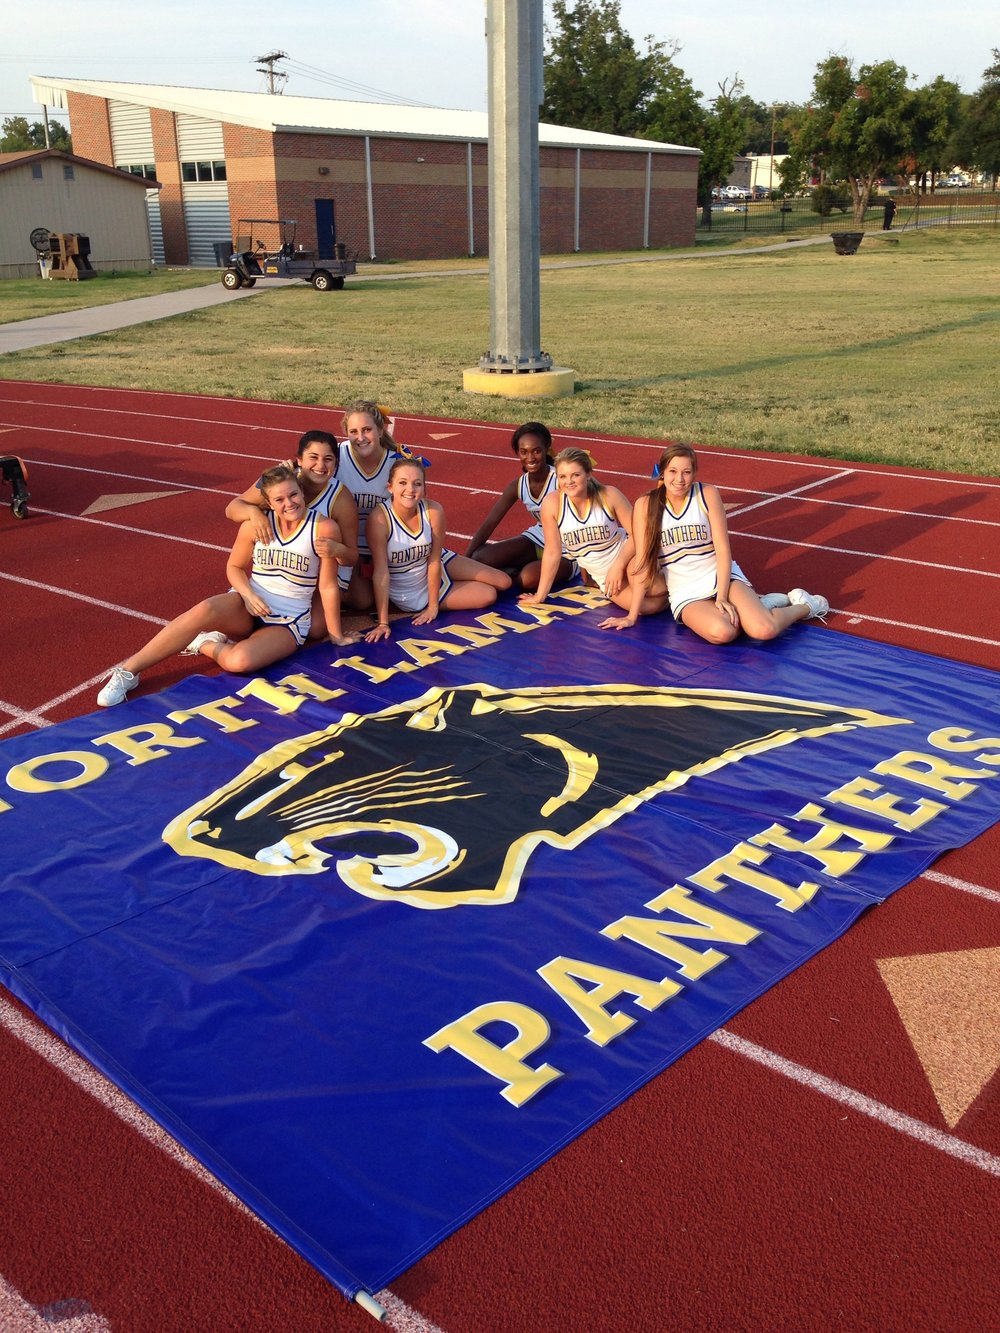 Jamielynn Parker (right) and the other varisty cheerleaders displaying a new banner last year.